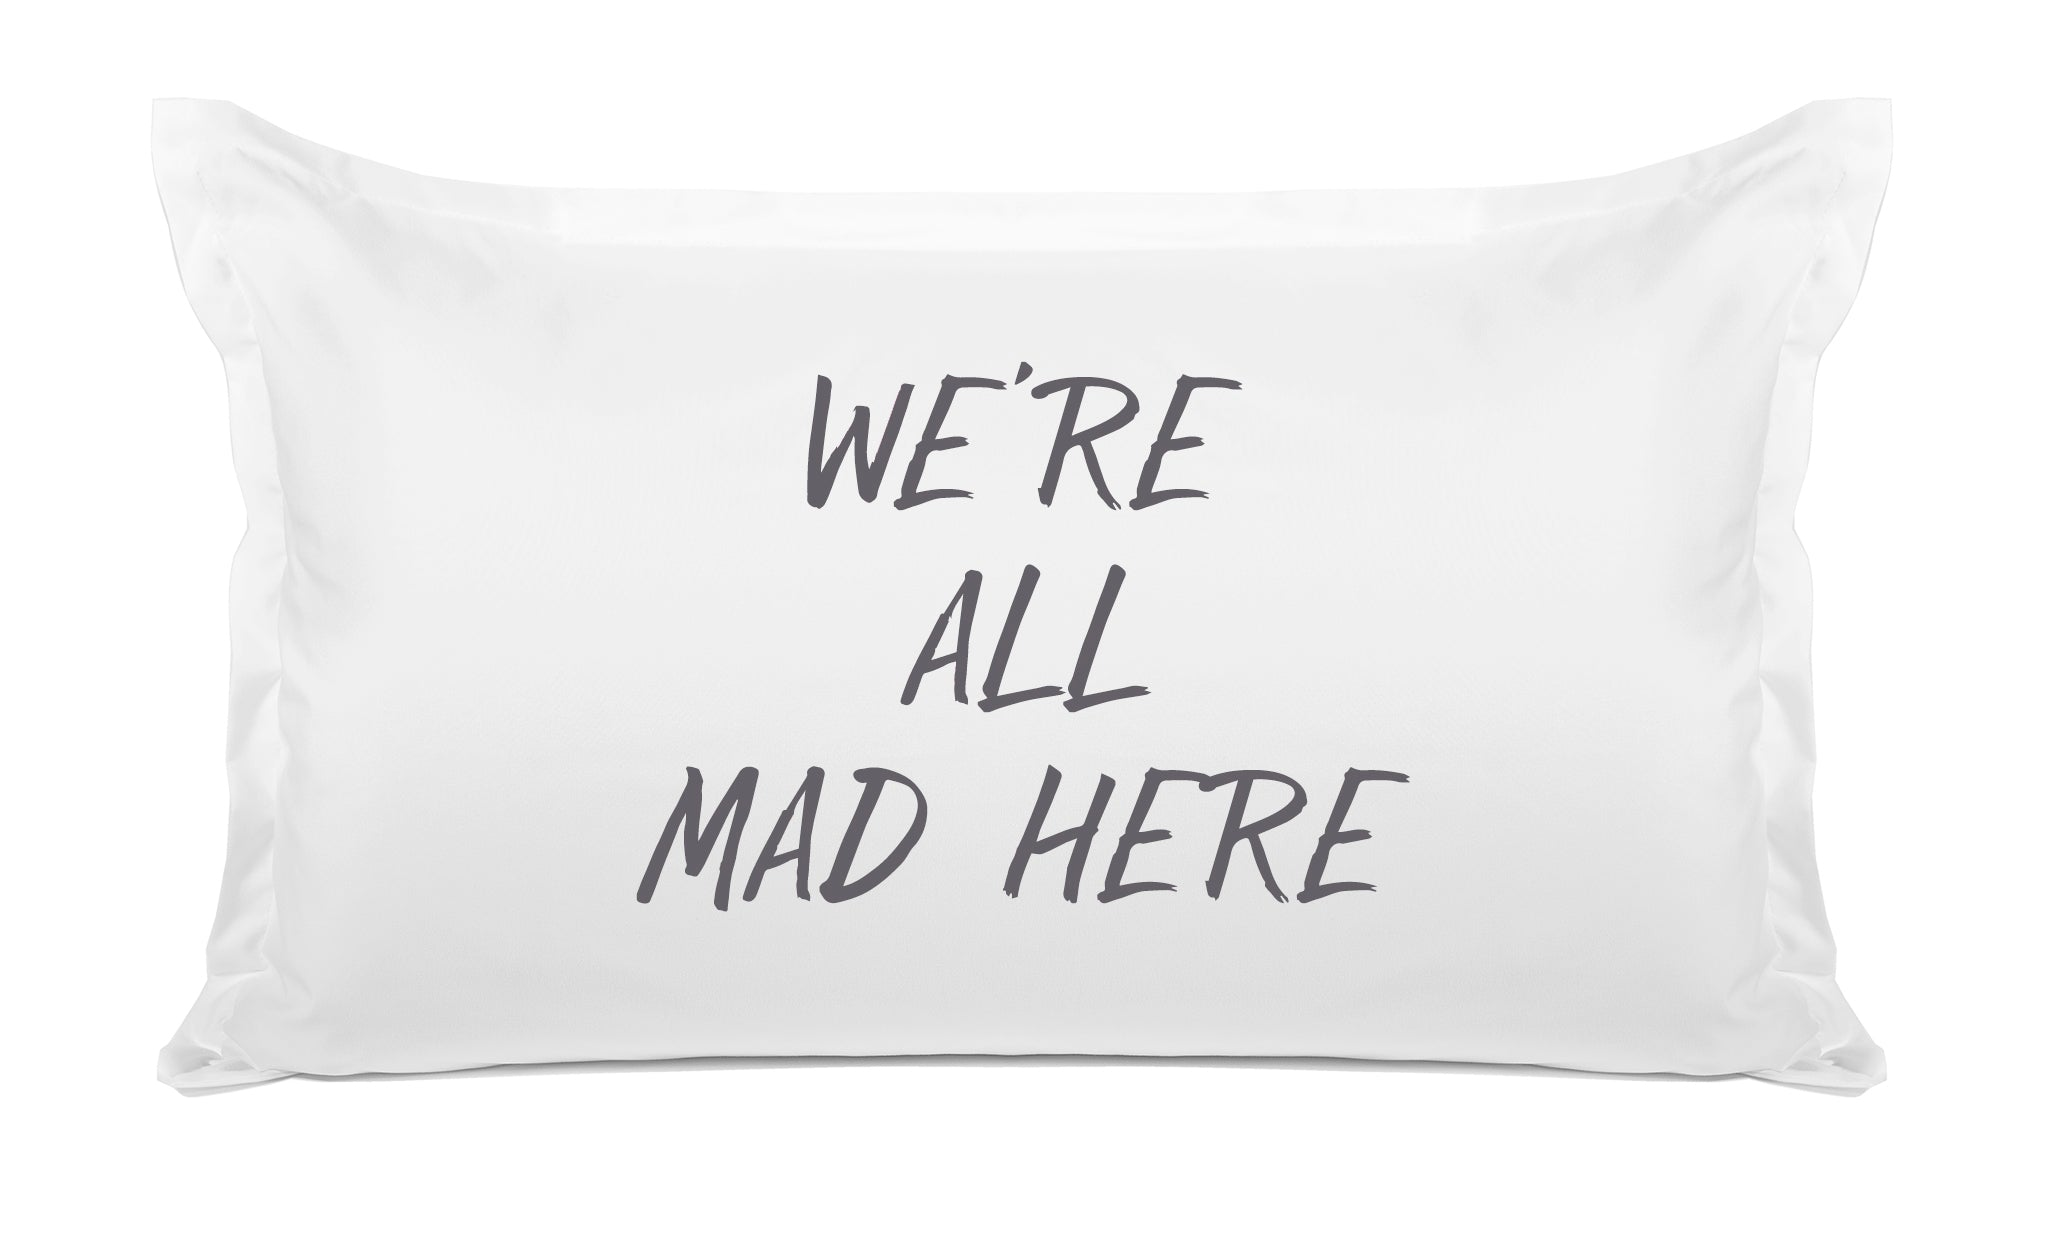 WE'RE ALL MAD HERE quote pillow case Di Lewis bedroom decor